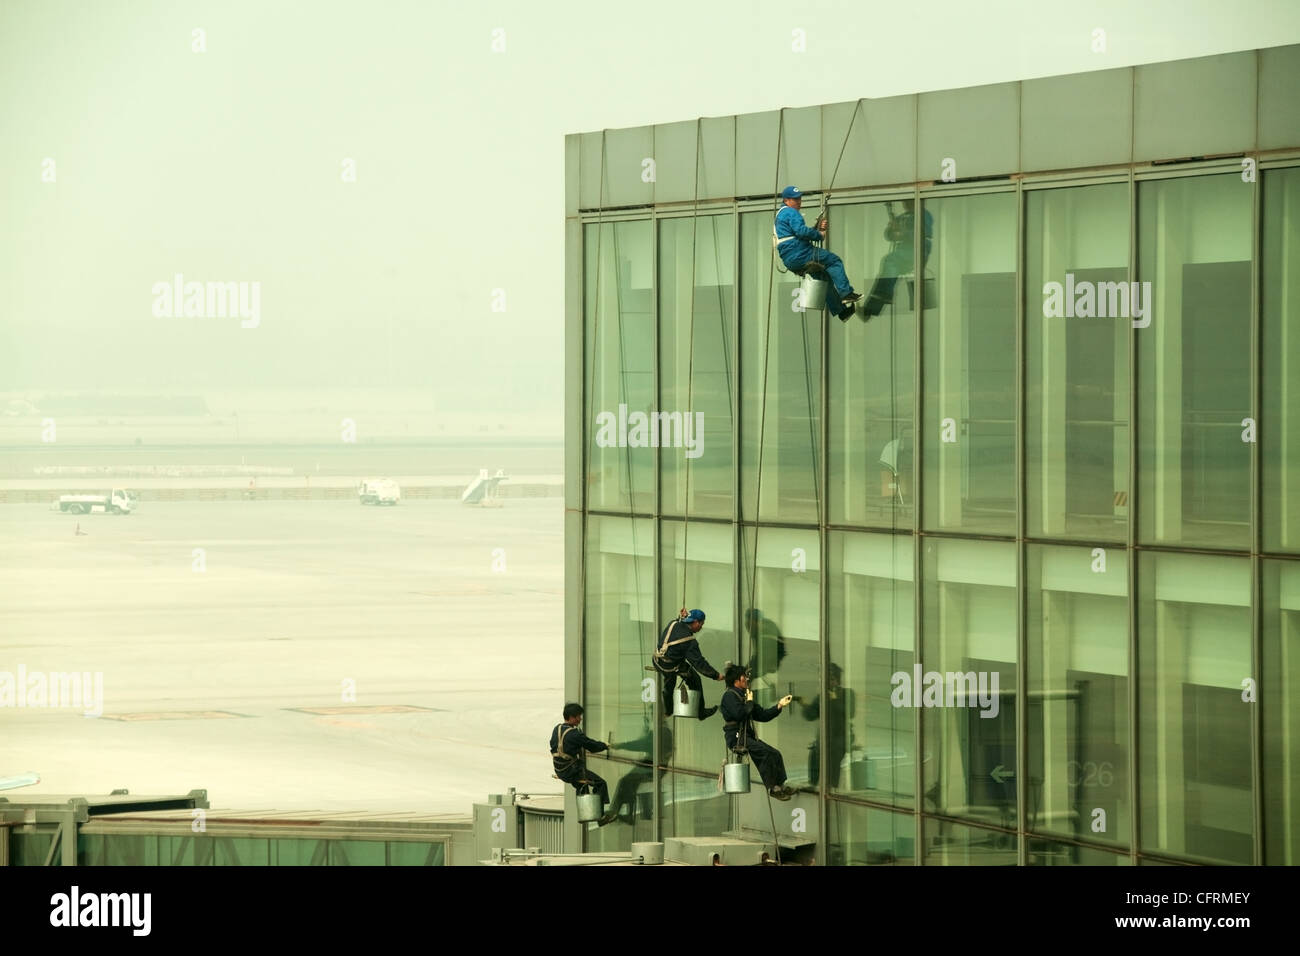 Hanging windows cleaners at Beijing Airport, China - Stock Image